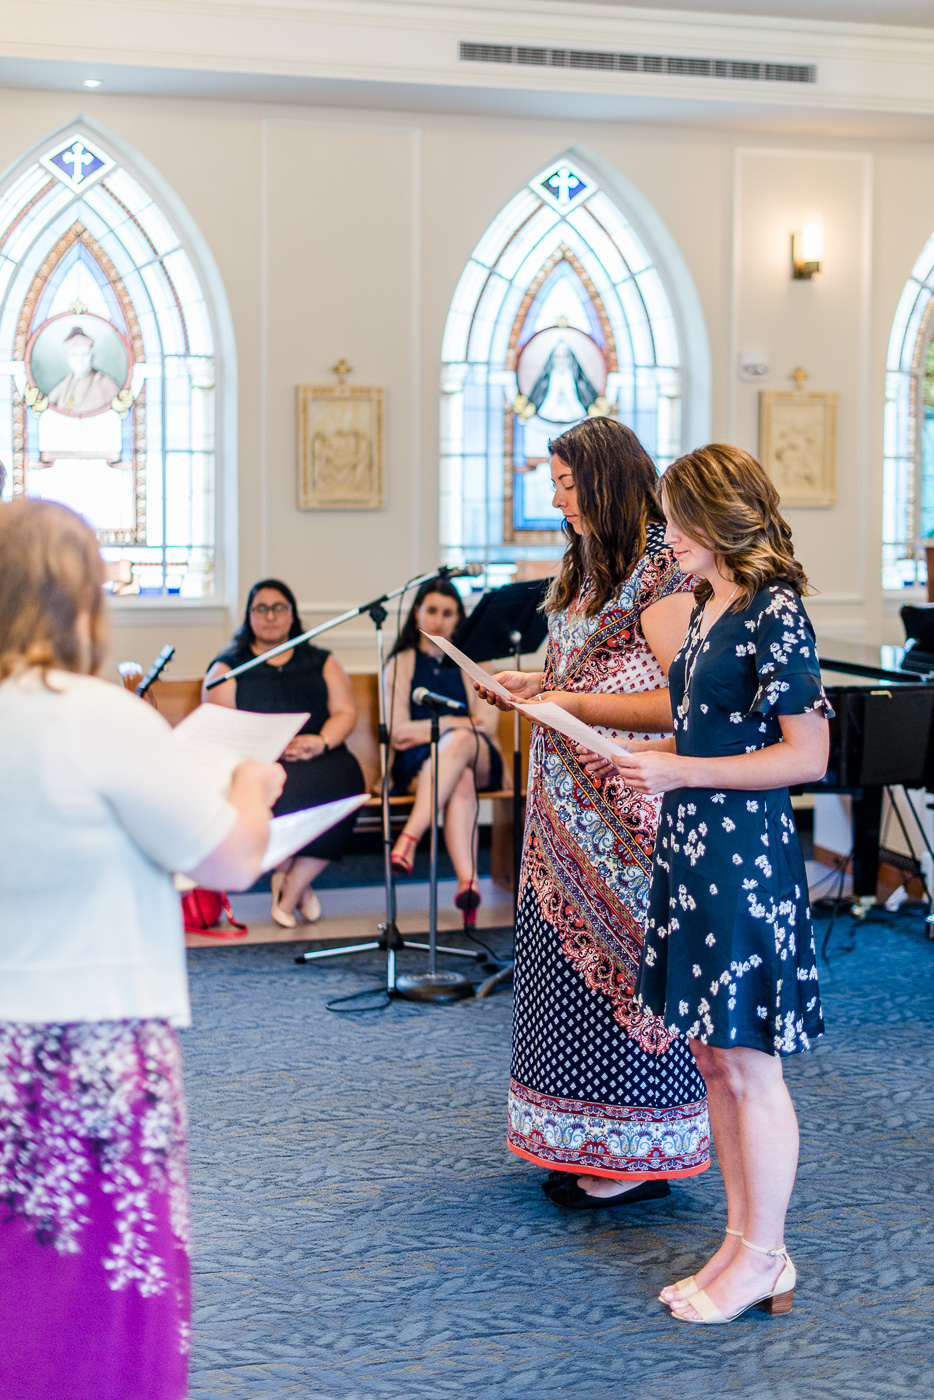 Emily-Annette-Photography-Catholic-Consecrated-Commitment-Mass-Event-Diocese-Arlington-Fairfax-Photographer-Youth-Apostles-August-2018-08.jpg